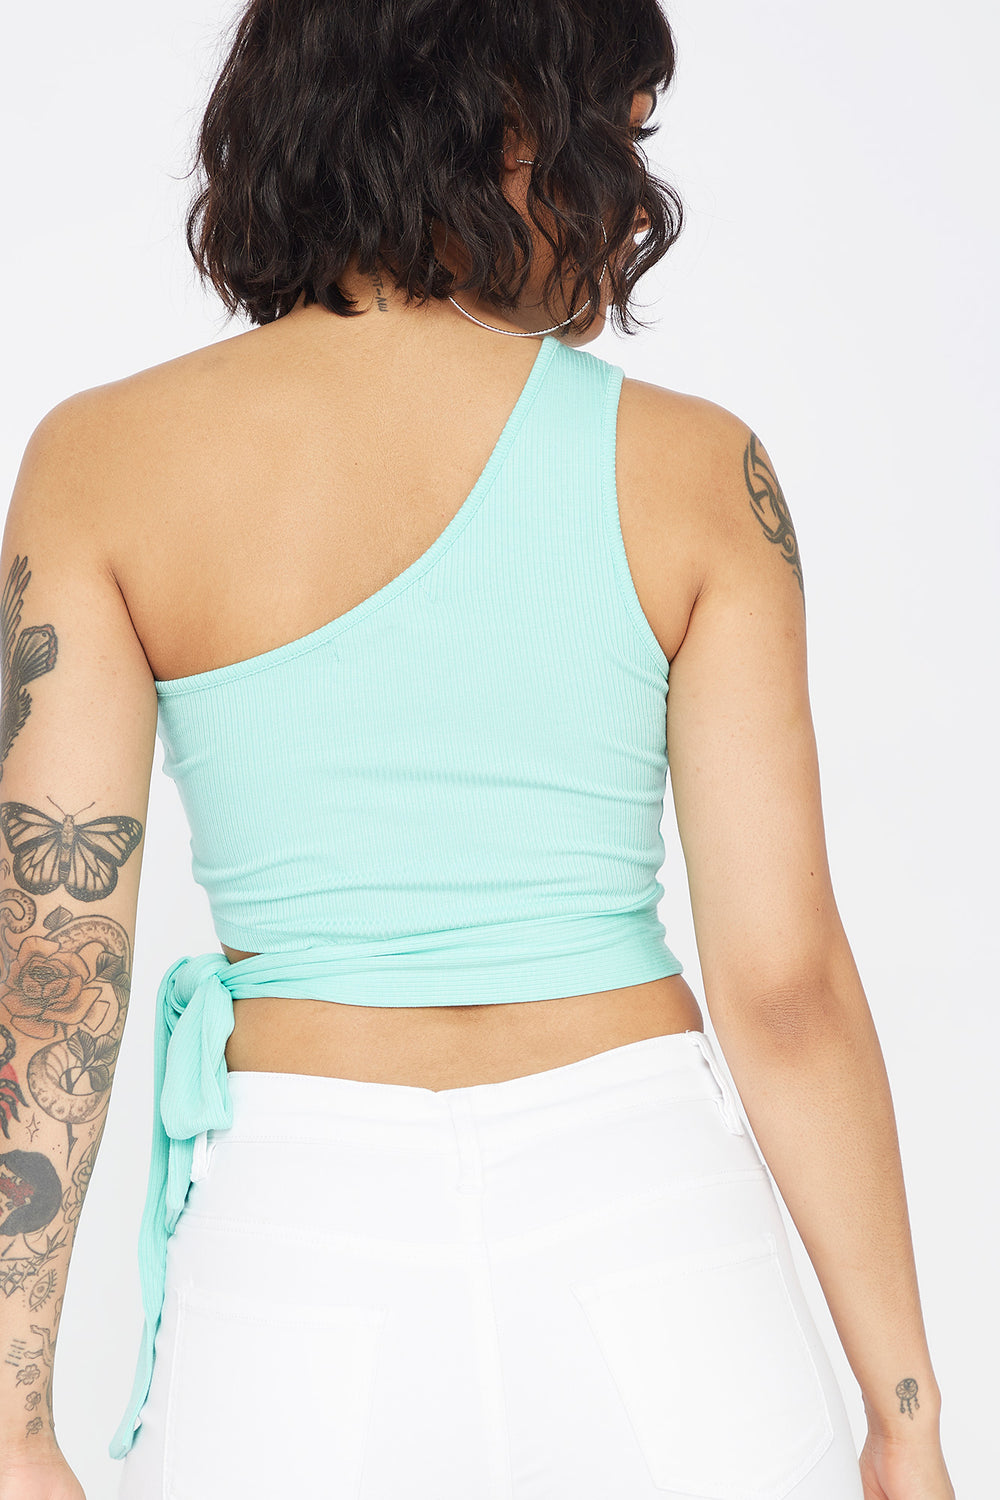 Ribbed One Shoulder Side Tie Cropped Top Turquoise